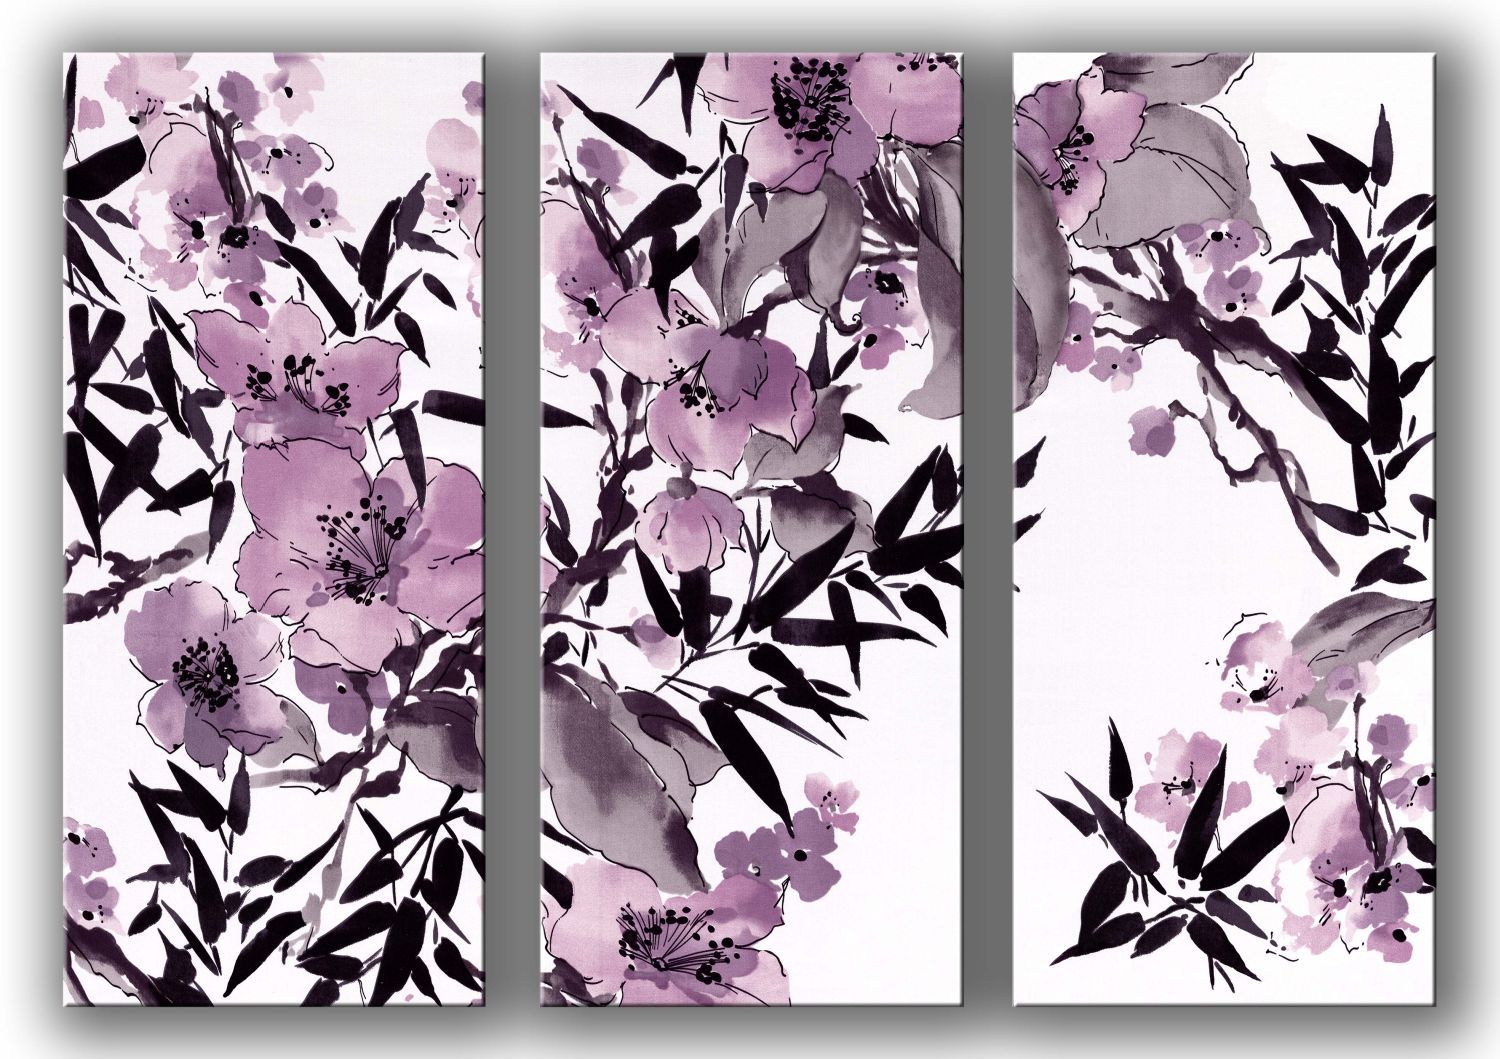 Monsoon Kyoto cherry blossom wall art